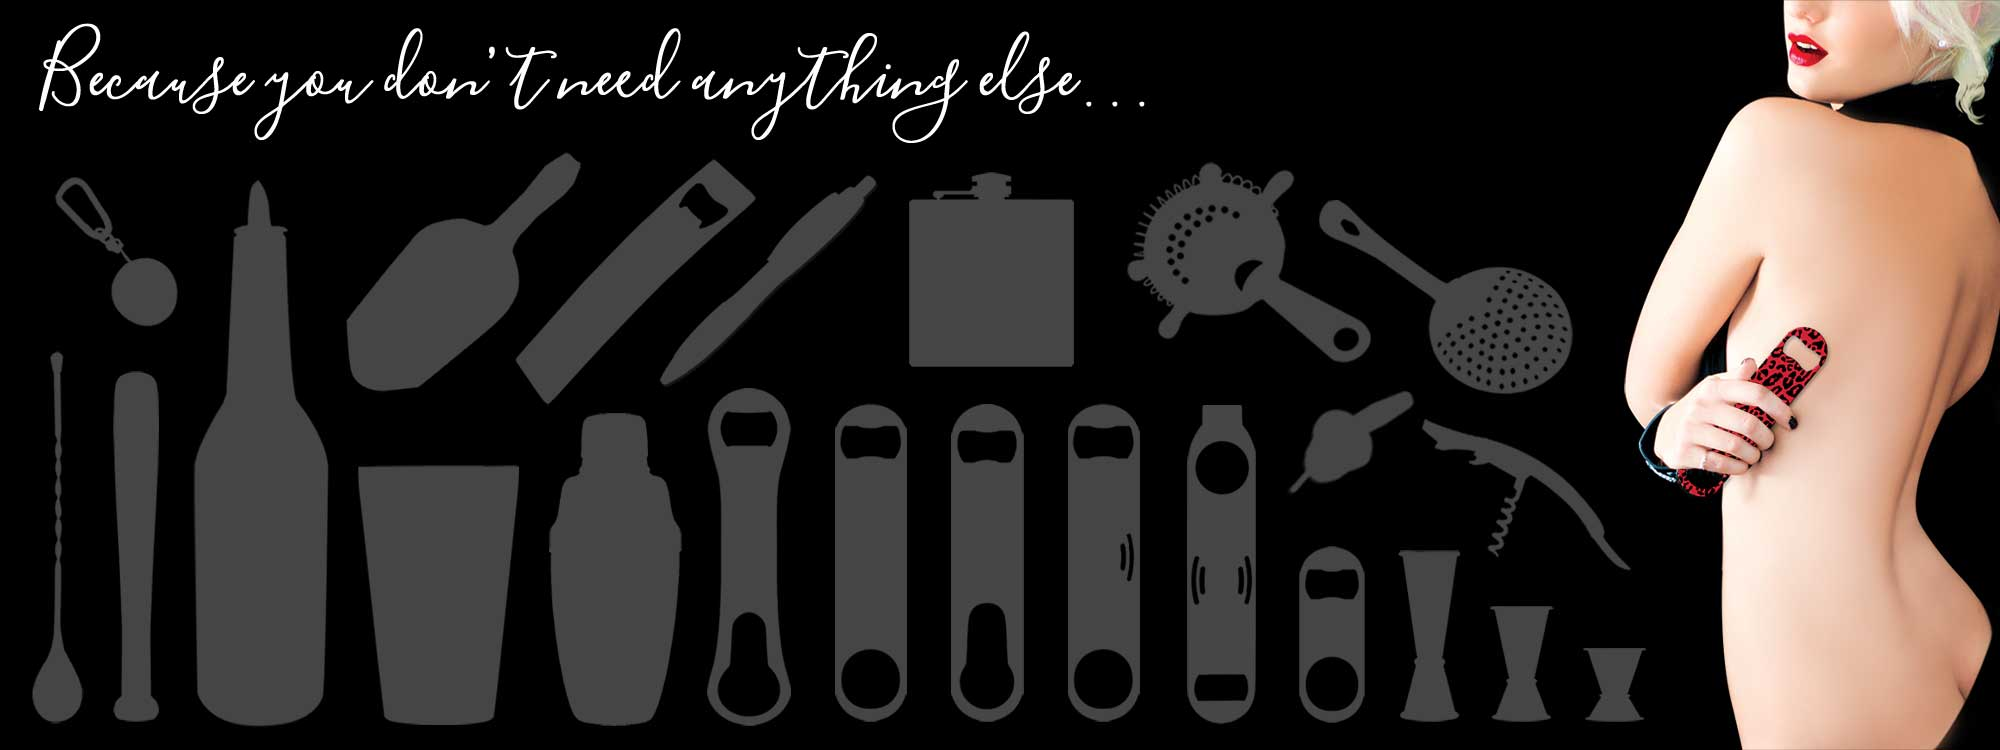 Ink Correct Bartender Bottle Openers and Bar Gear